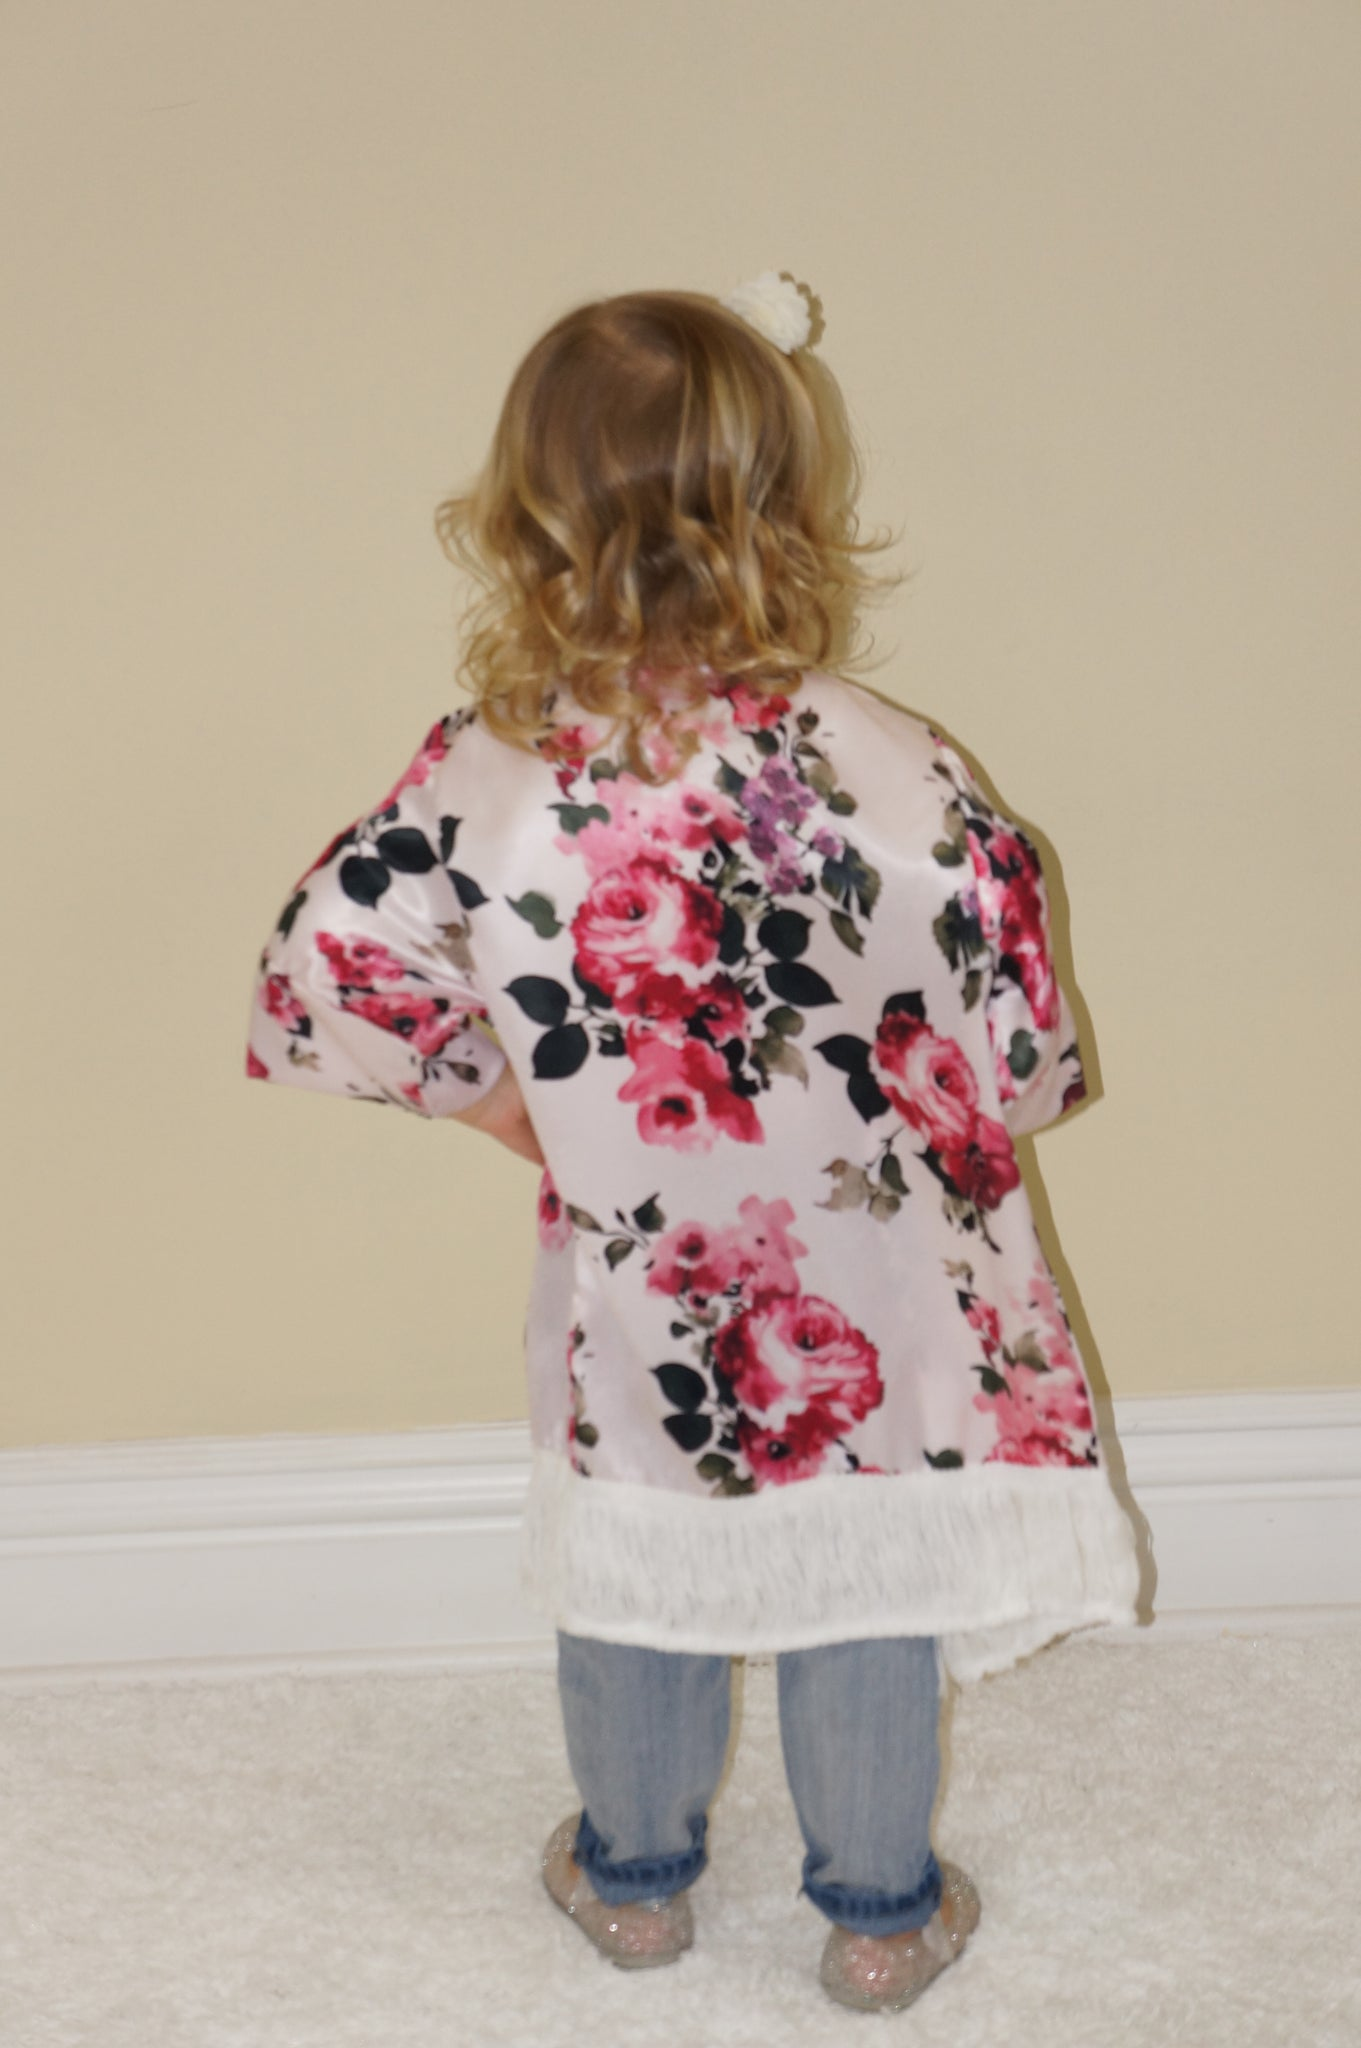 1b46ea01e9 ... Girl's White Floral Satin Kimono Jacket - The 90210 Tastemakers Mommy &  Me Boutique ...